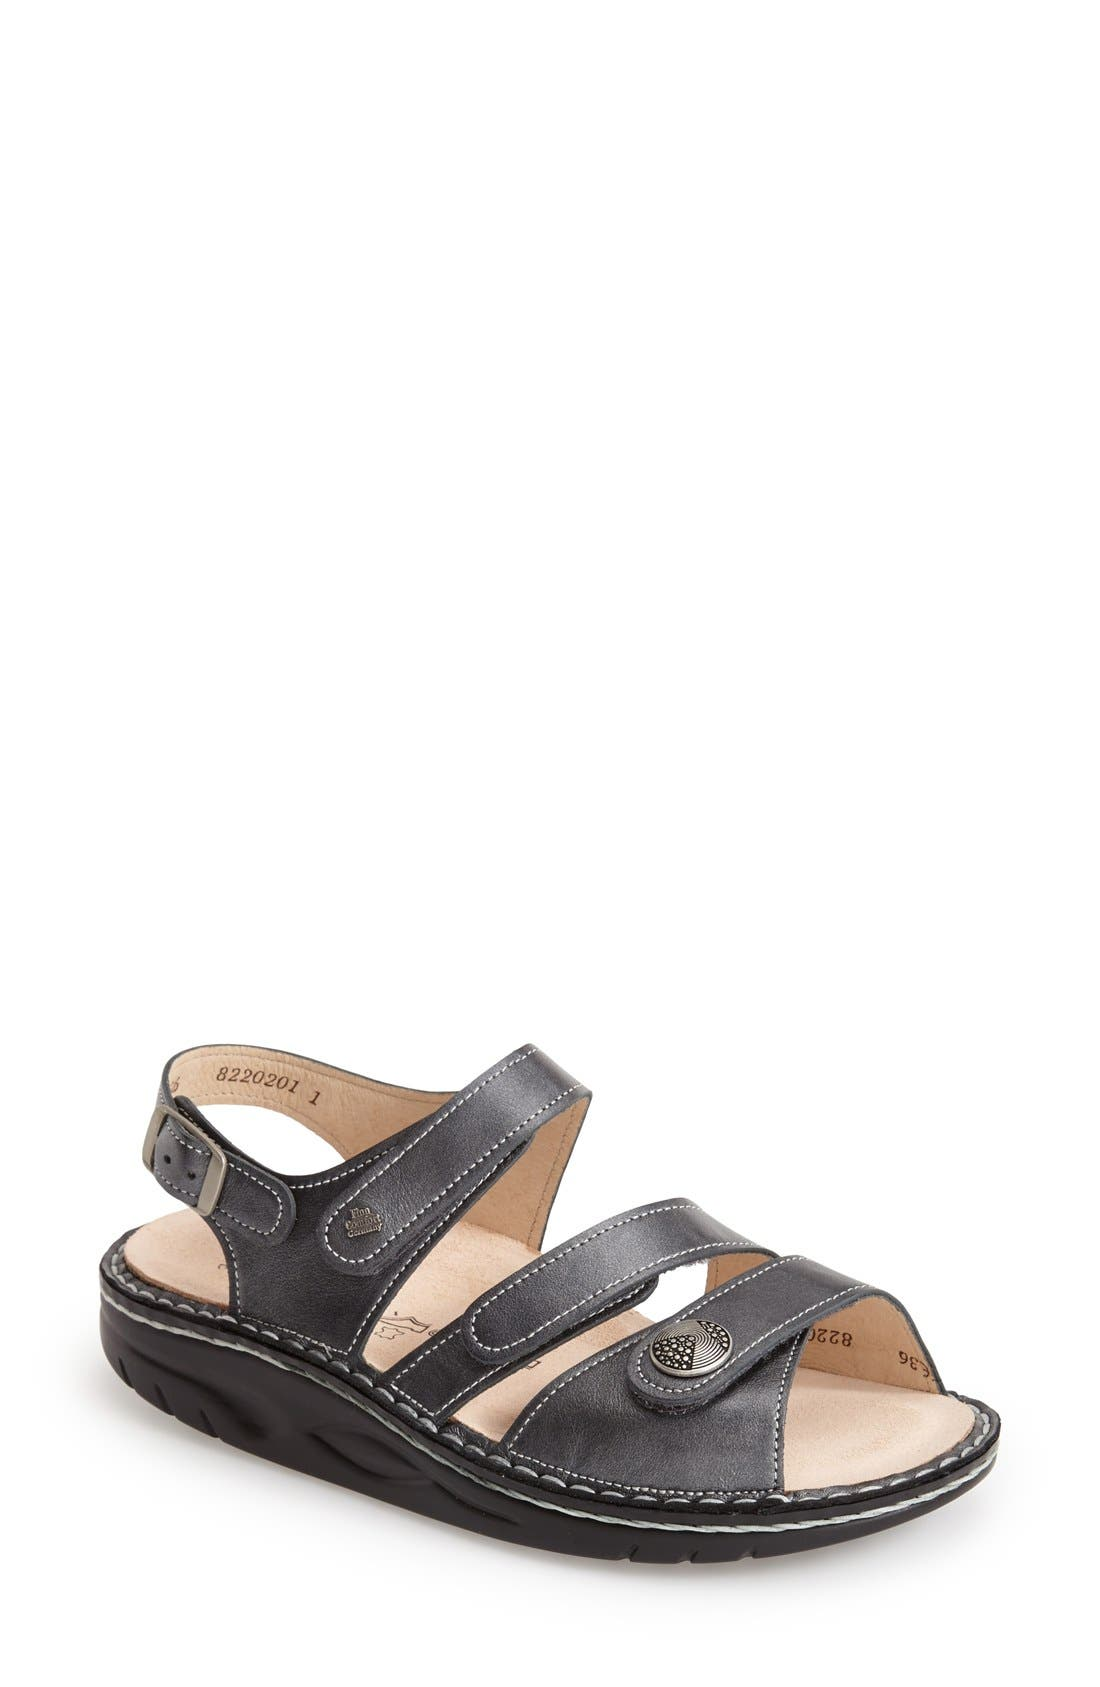 'Tiberias' Leather Sandal,                             Main thumbnail 1, color,                             020